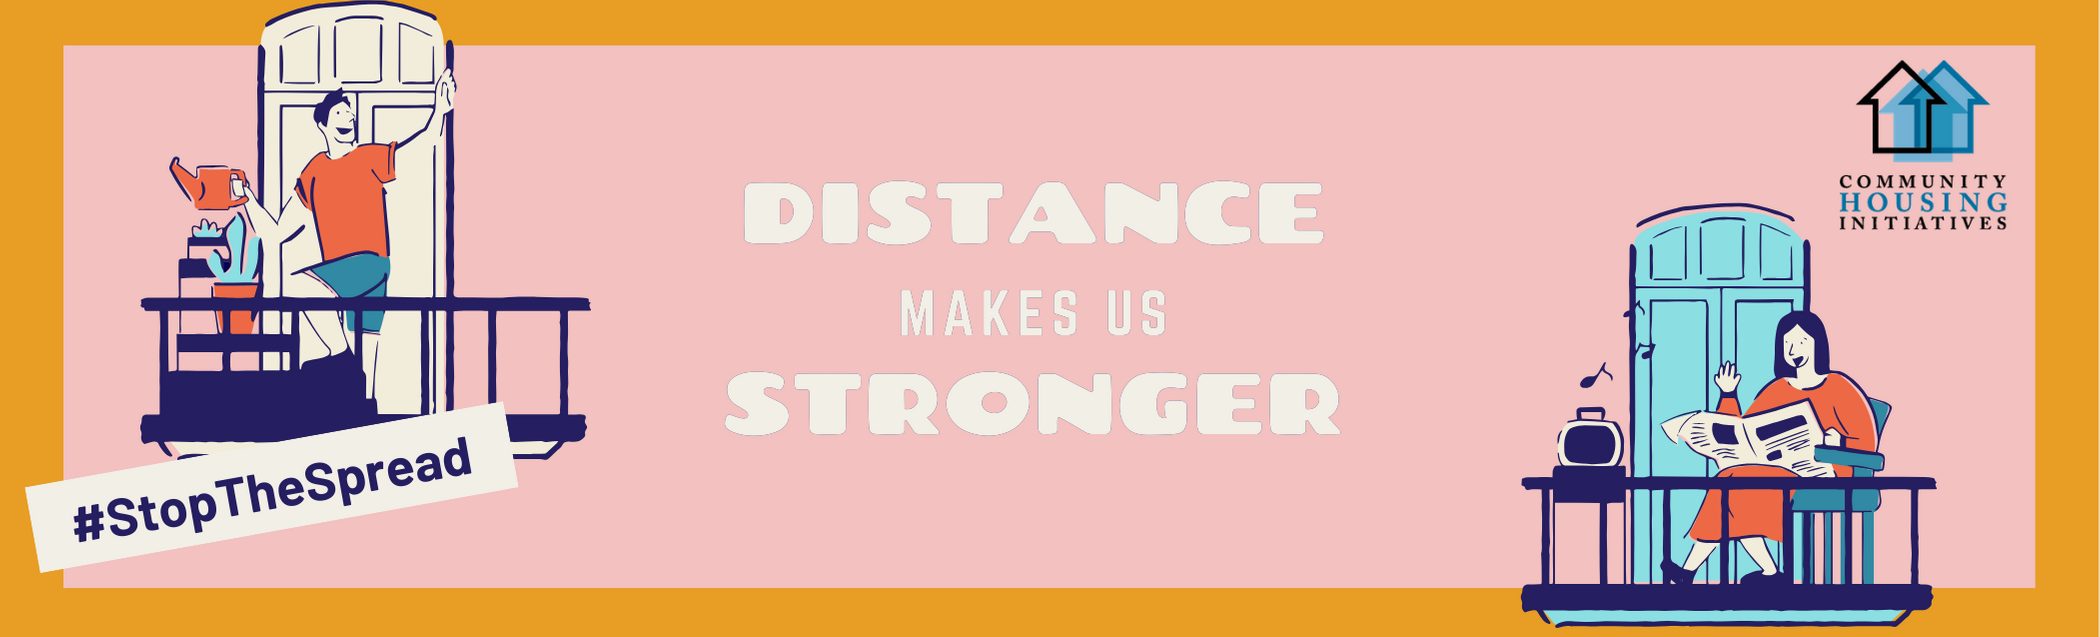 Distance Makes Us Stronger Graphic